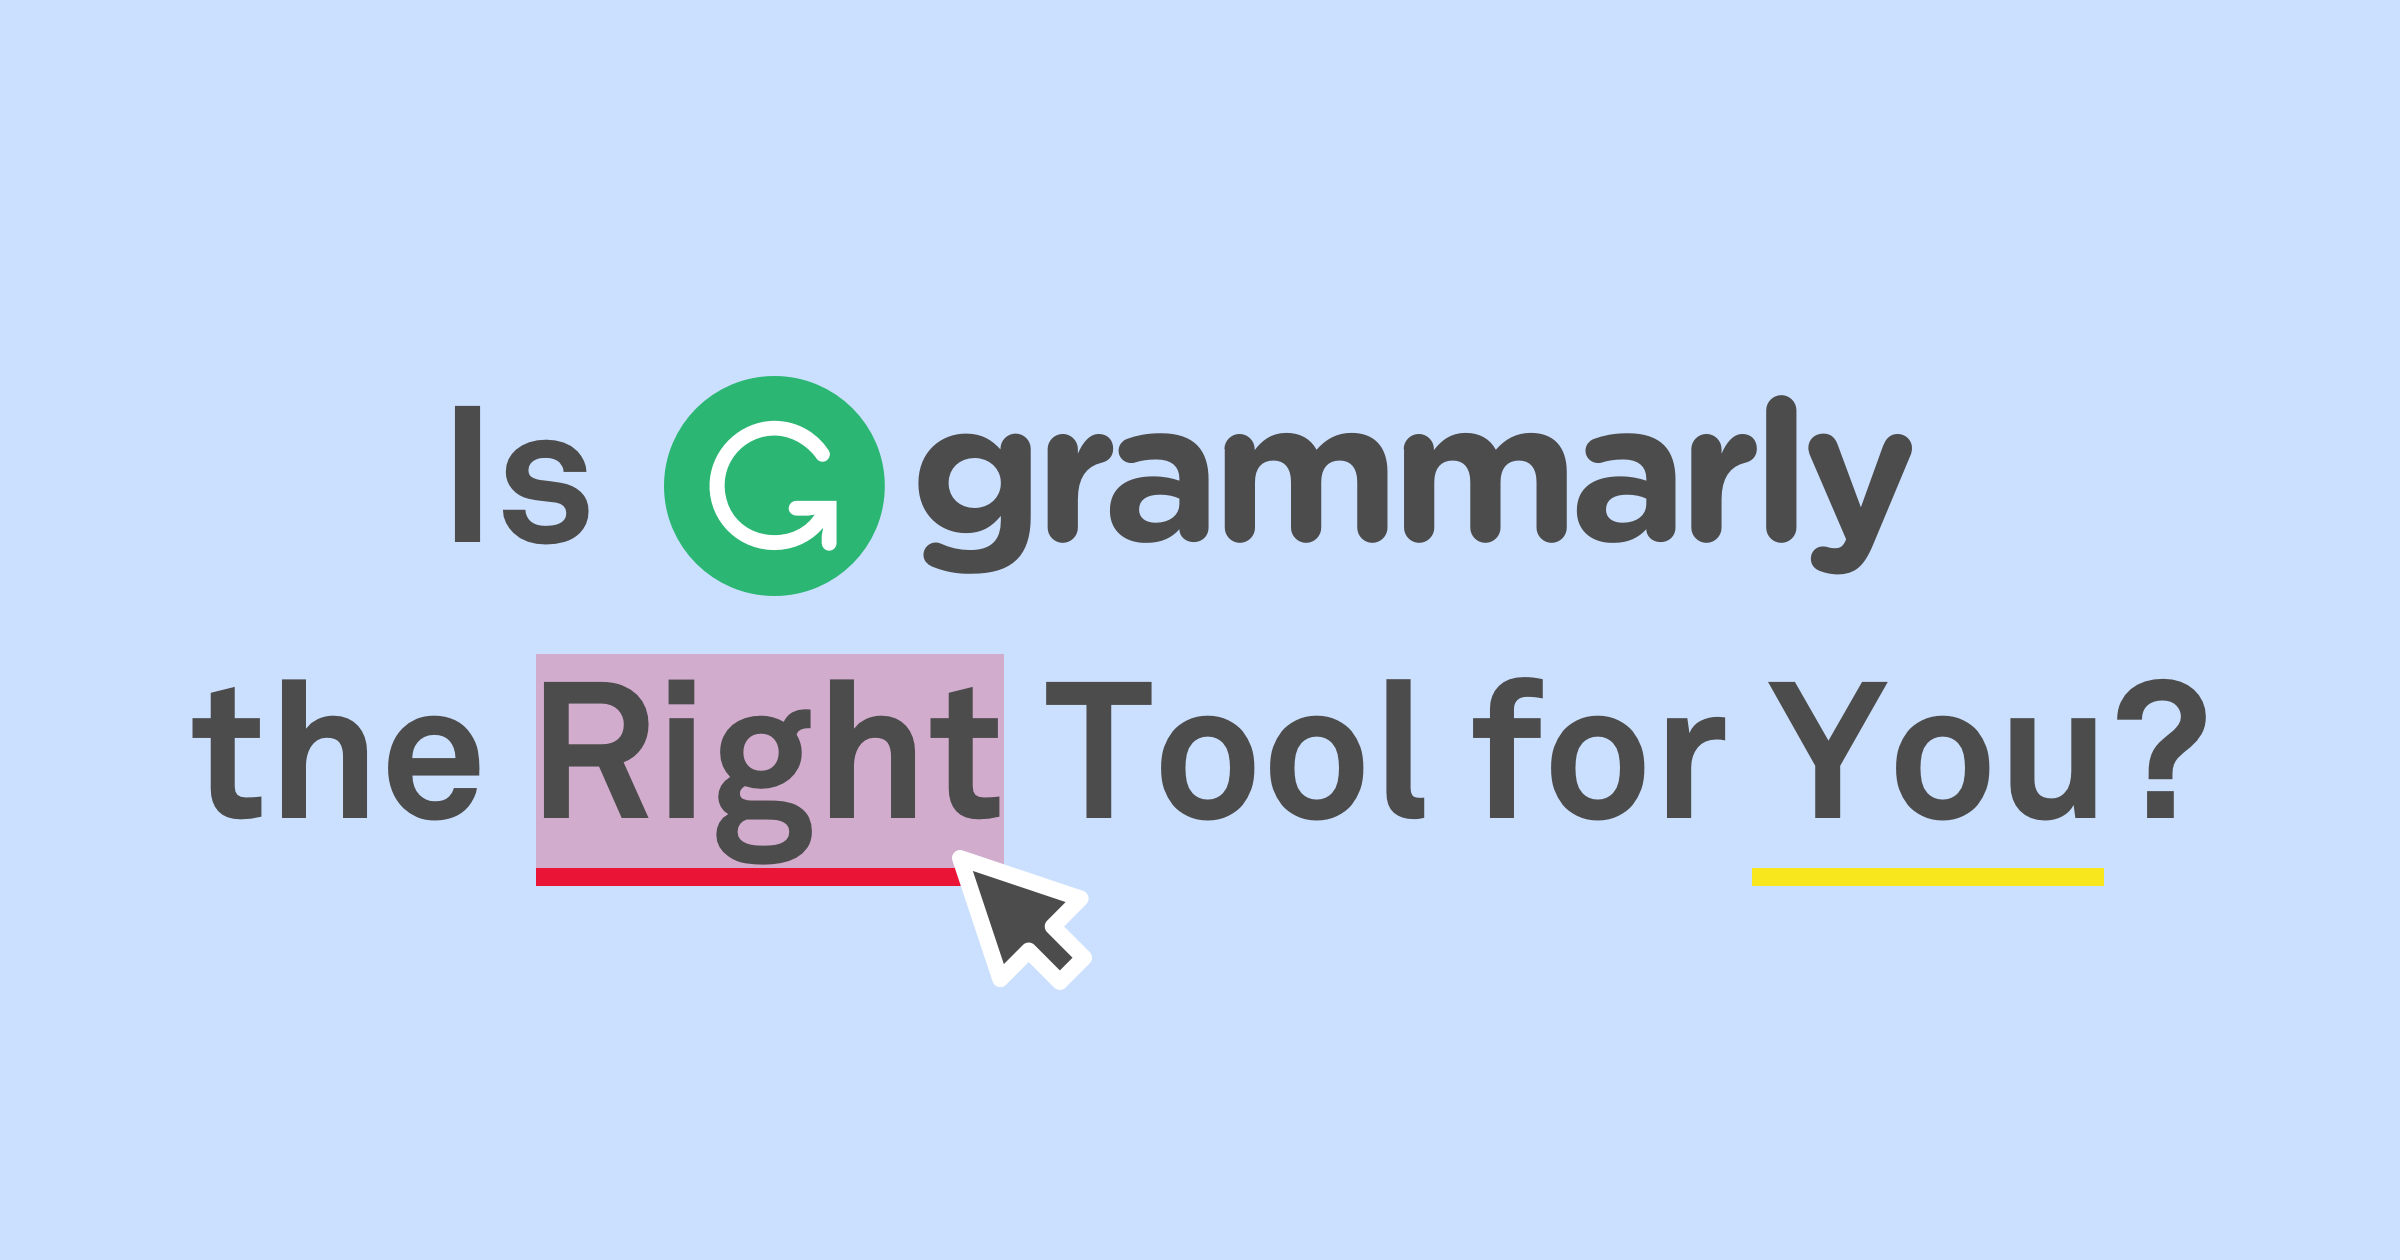 Why Is Grammarly Trying To Make Me Pay